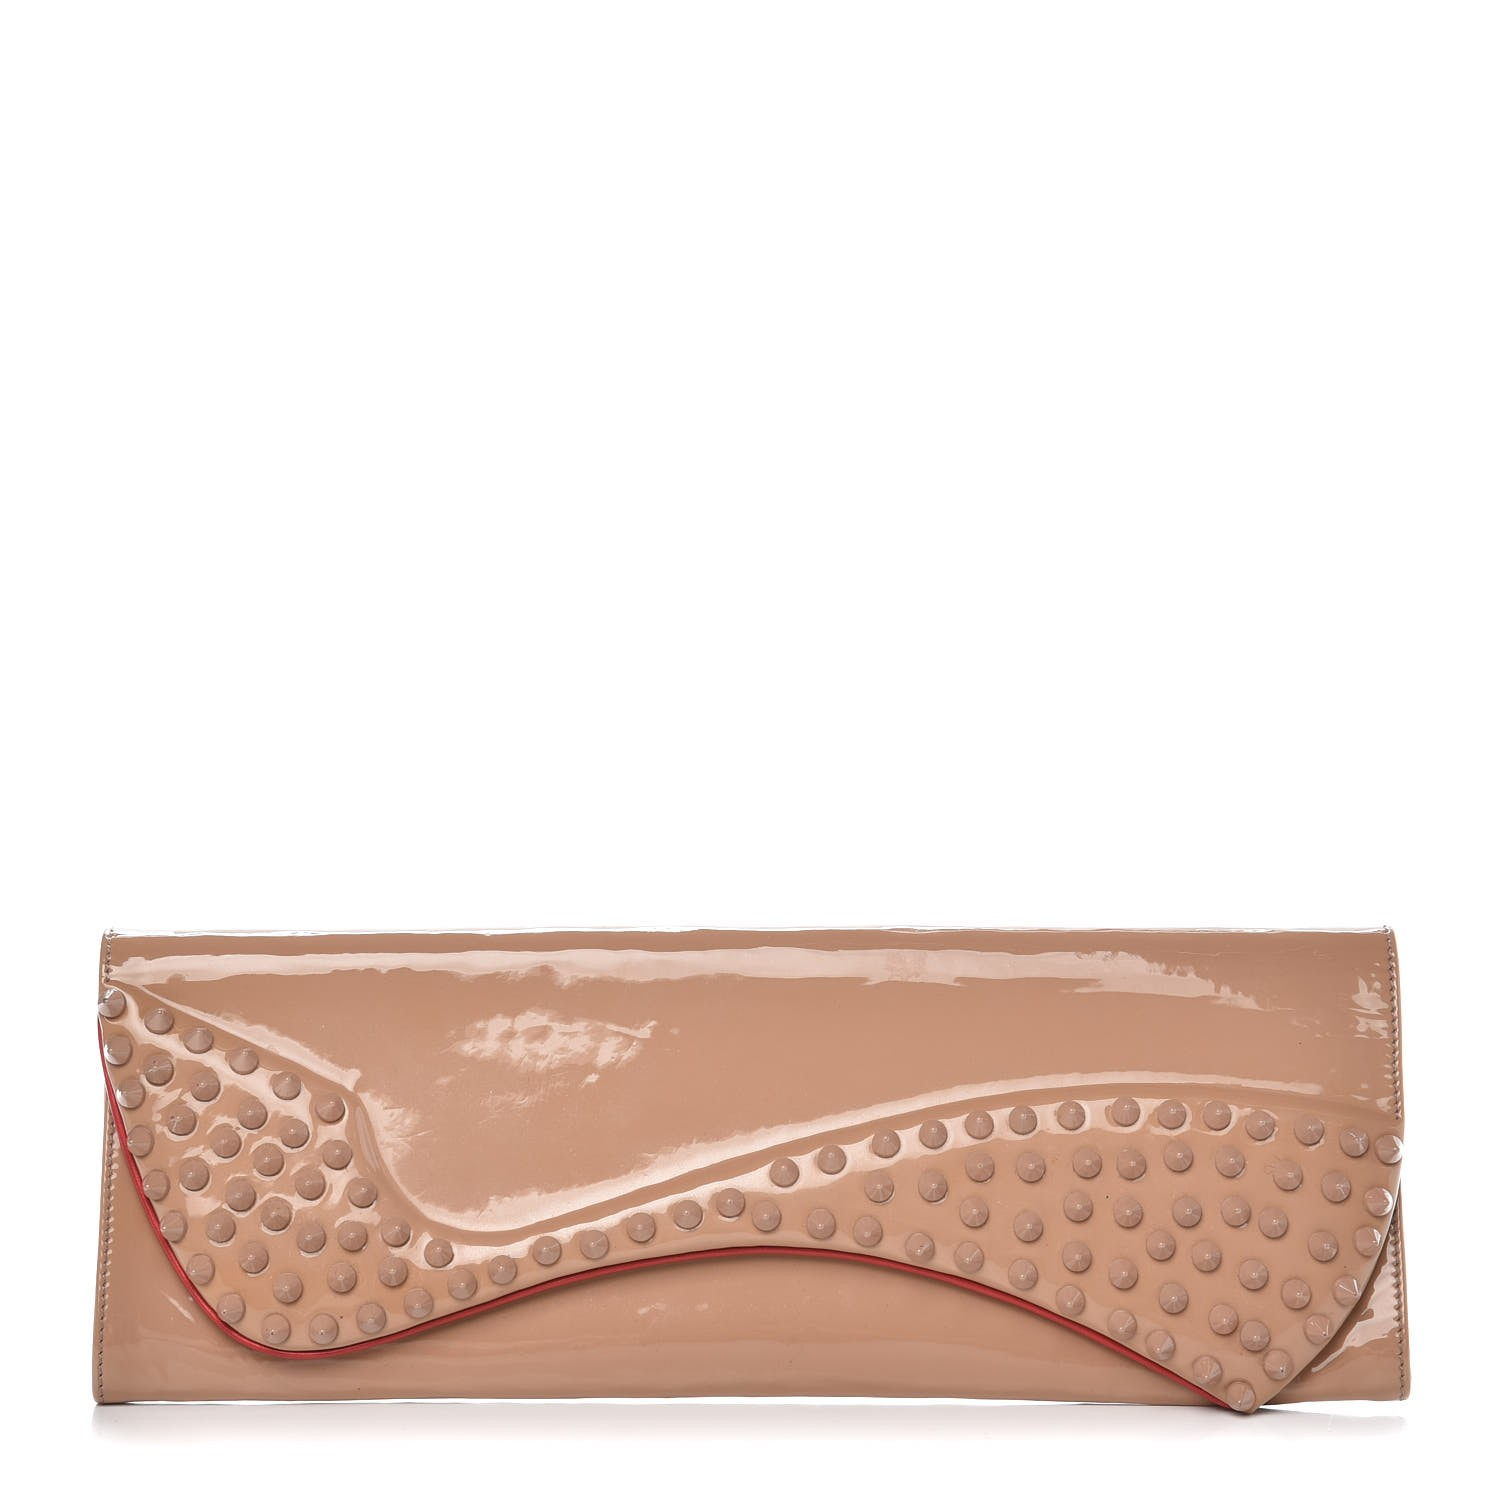 christian louboutin pigalle spiked clutch